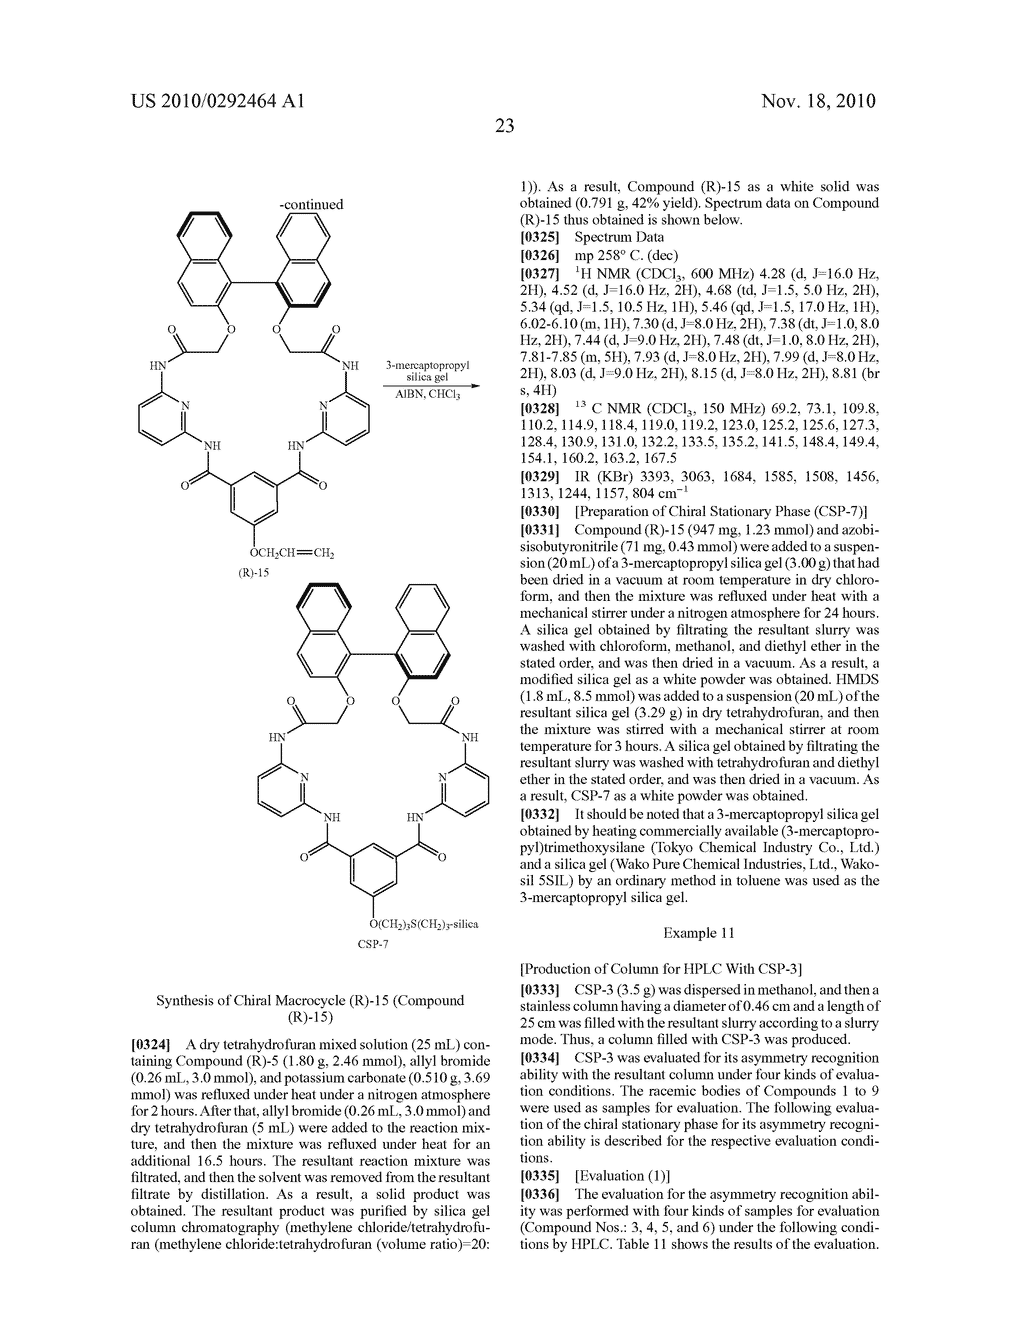 OPTICAL-ISOMER SEPARATING AGENT FOR CHROMATOGRAPHY AND PROCESS FOR PRODUCING THE SAME - diagram, schematic, and image 67